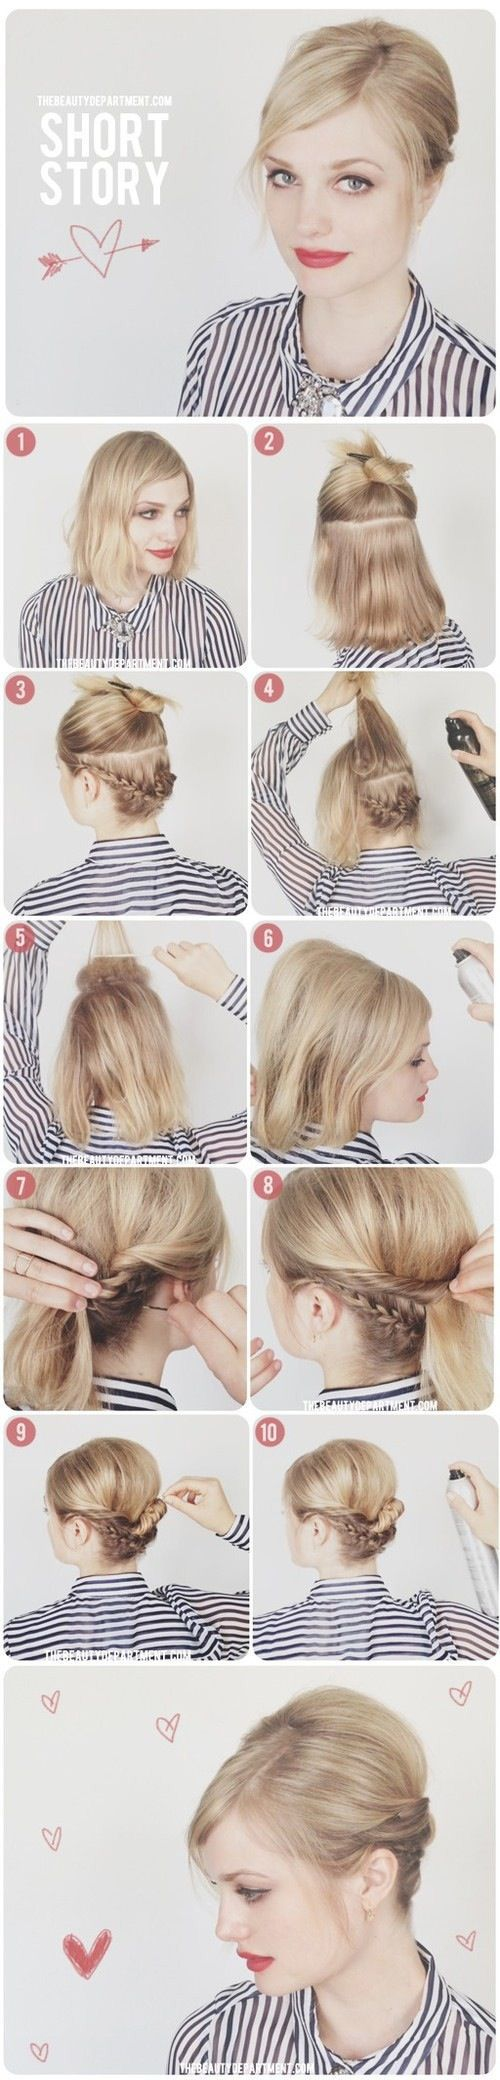 Pin On Hair Cuts Styles And Colour Ideas